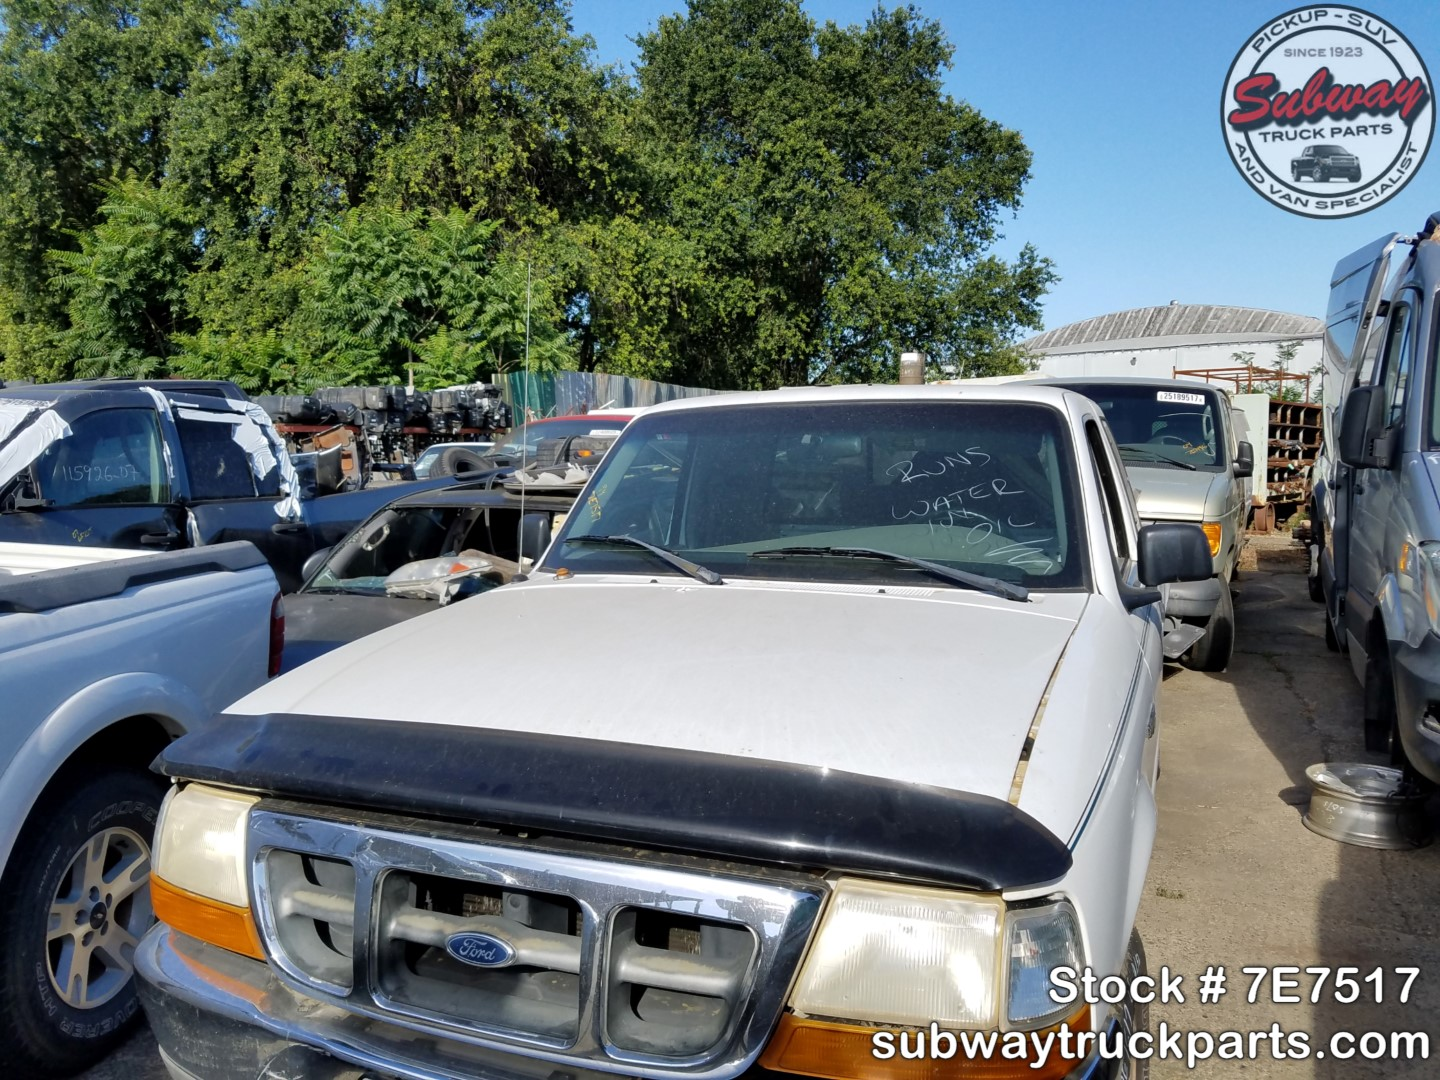 Used Parts 1999 Ford Ranger Xlt 30l Manual 4x4 Subway Truck. Used Parts 1999 Ford Ranger Xlt 30l Manual 4. Ford. 2003 Ford Ranger Extended Cab Parts Diagram At Scoala.co